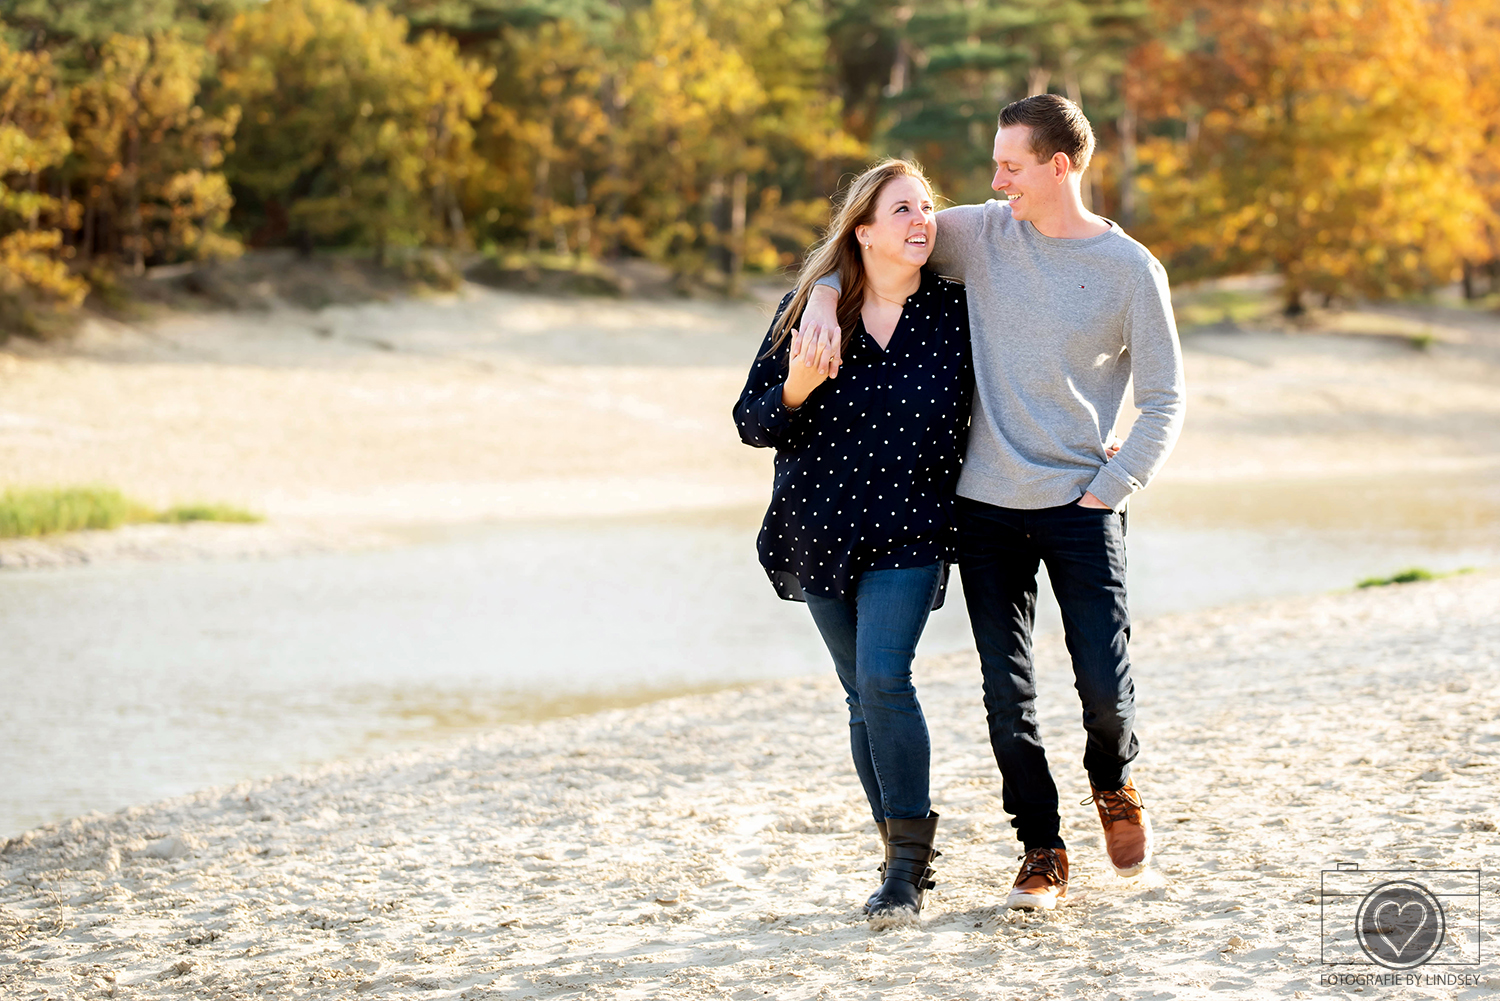 loveshoot by Lindsey